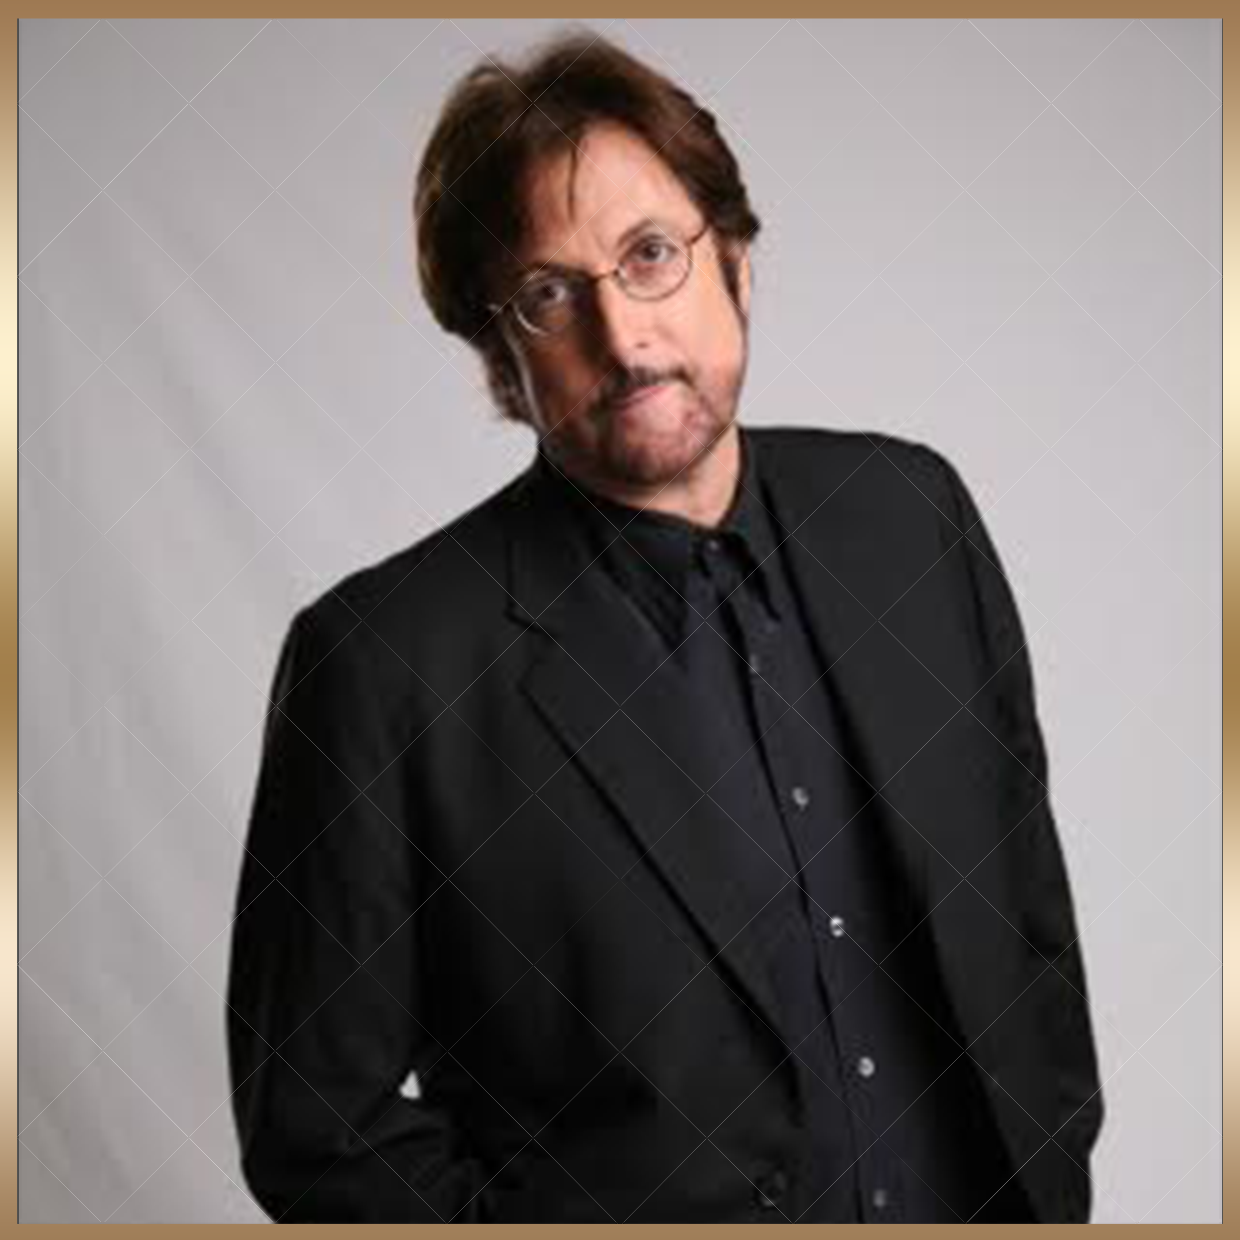 stephenbishop